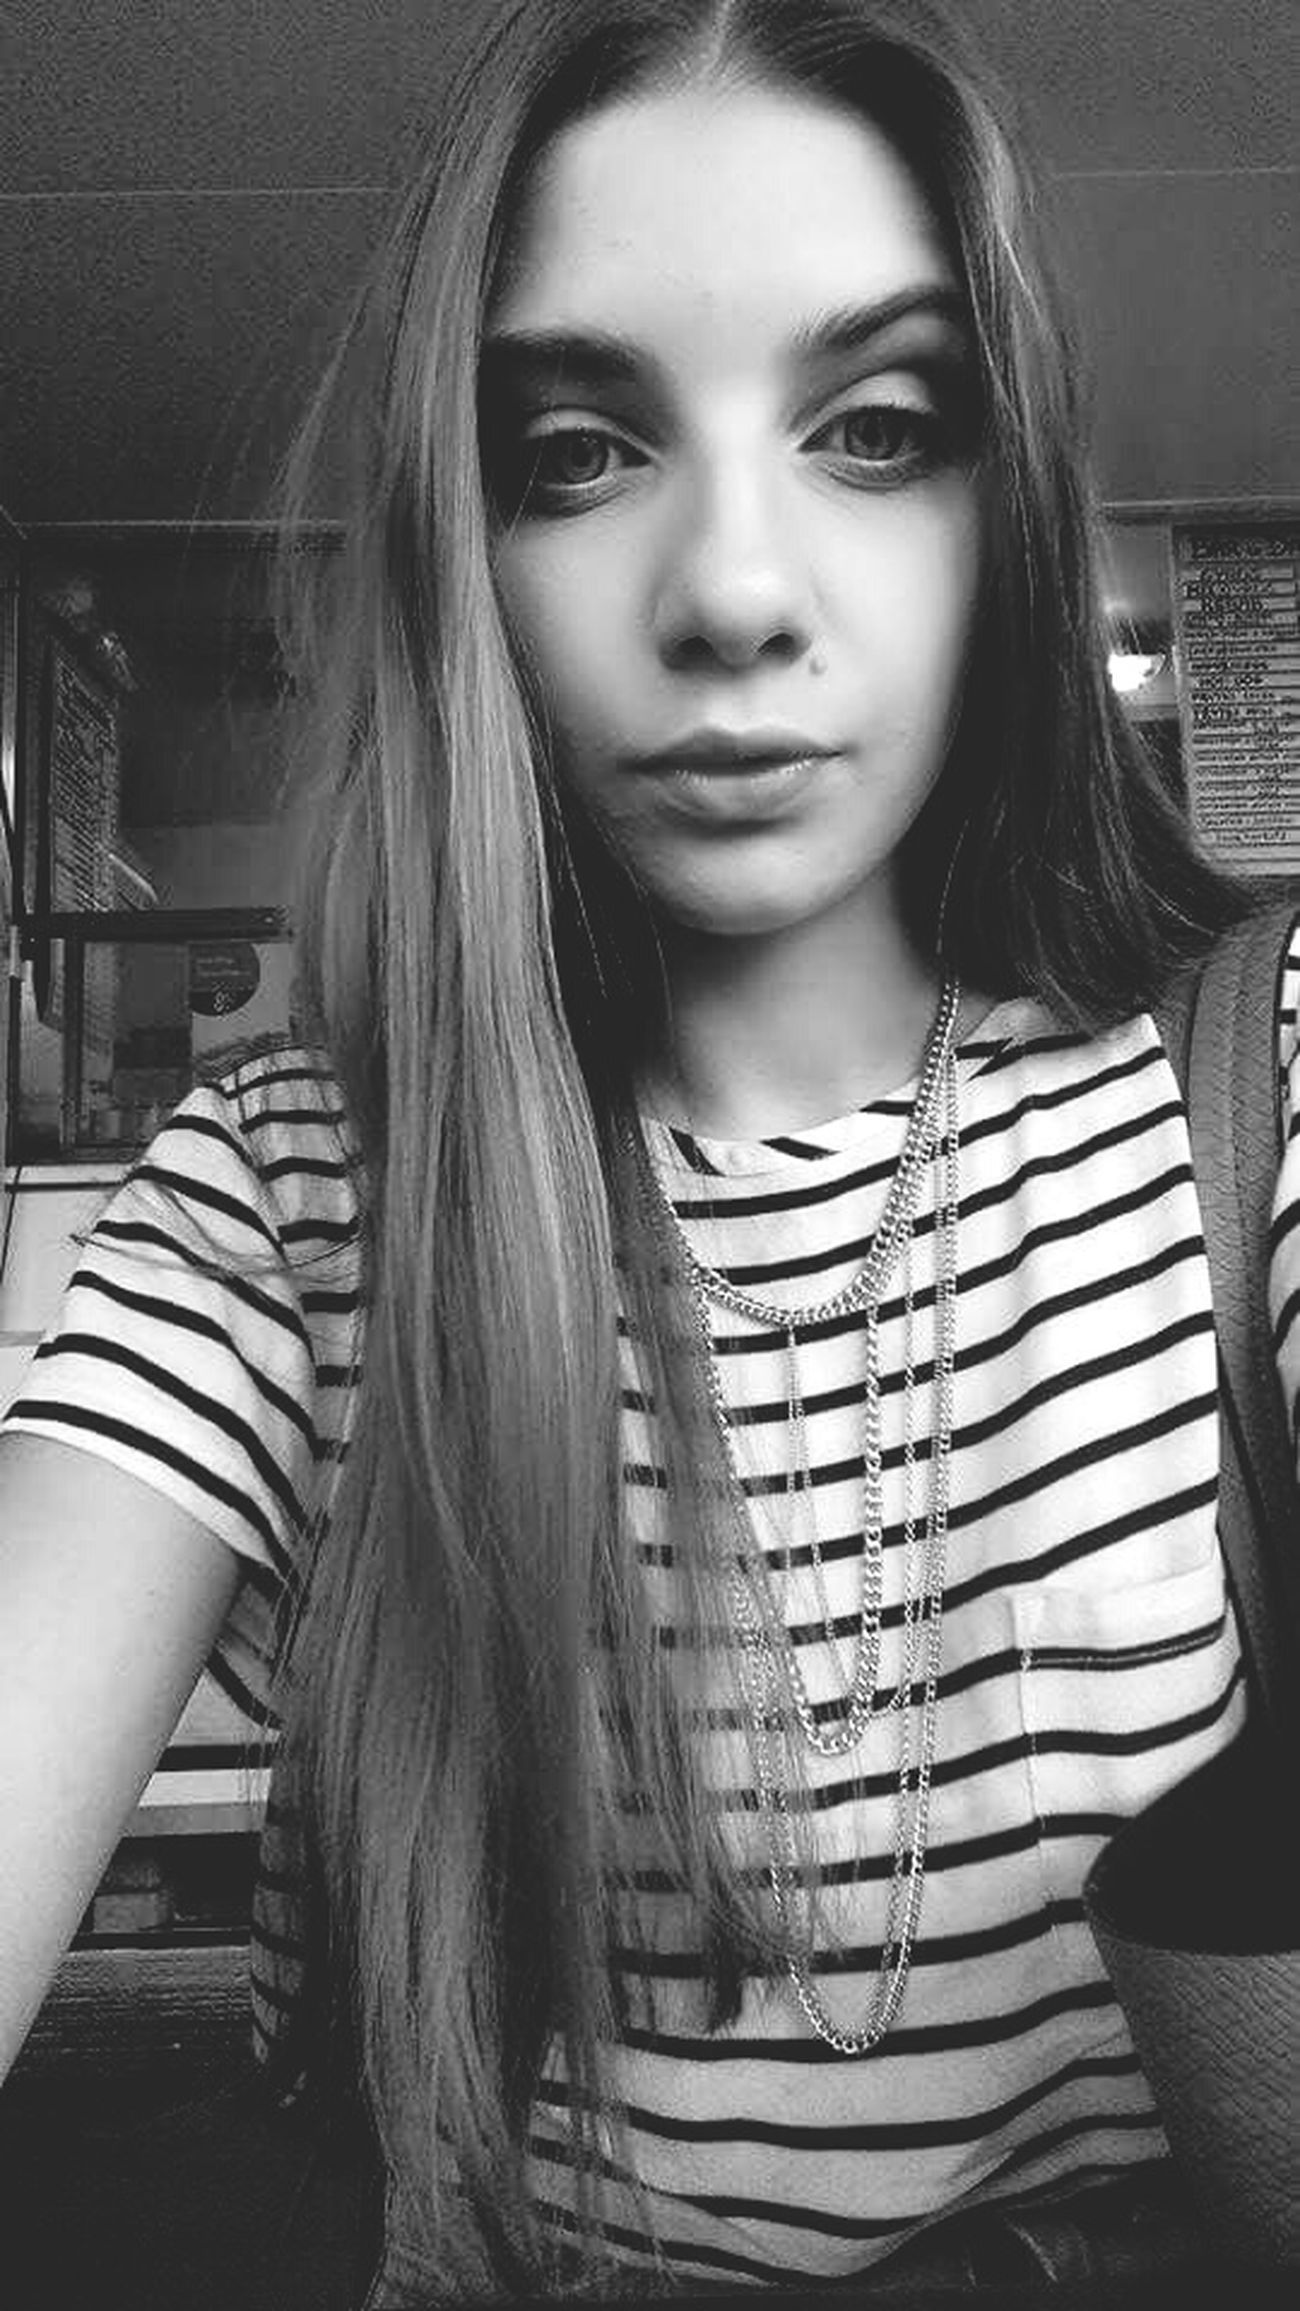 w oczekiwaniu na jedzonko! Polishgirl Polskadziewczyna Polskadupeczka Cutegirl Cute Selfie Portrait Blackandwhite Model Food